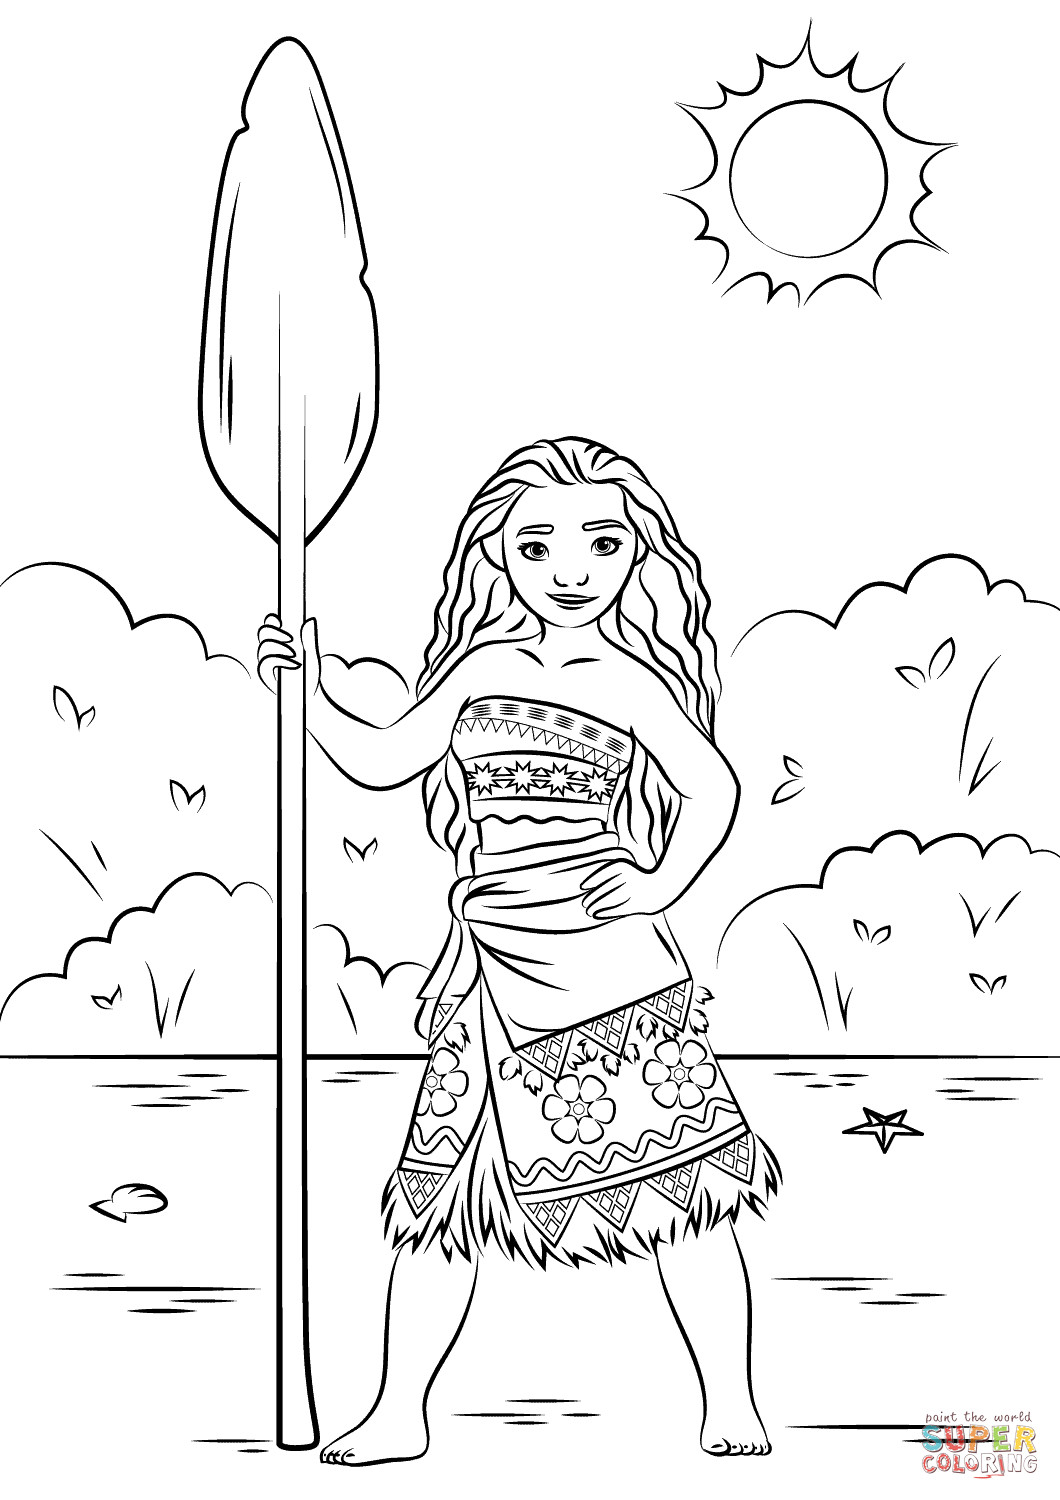 Best ideas about Moana Coloring Sheets For Girls . Save or Pin Princess Moana coloring page Now.